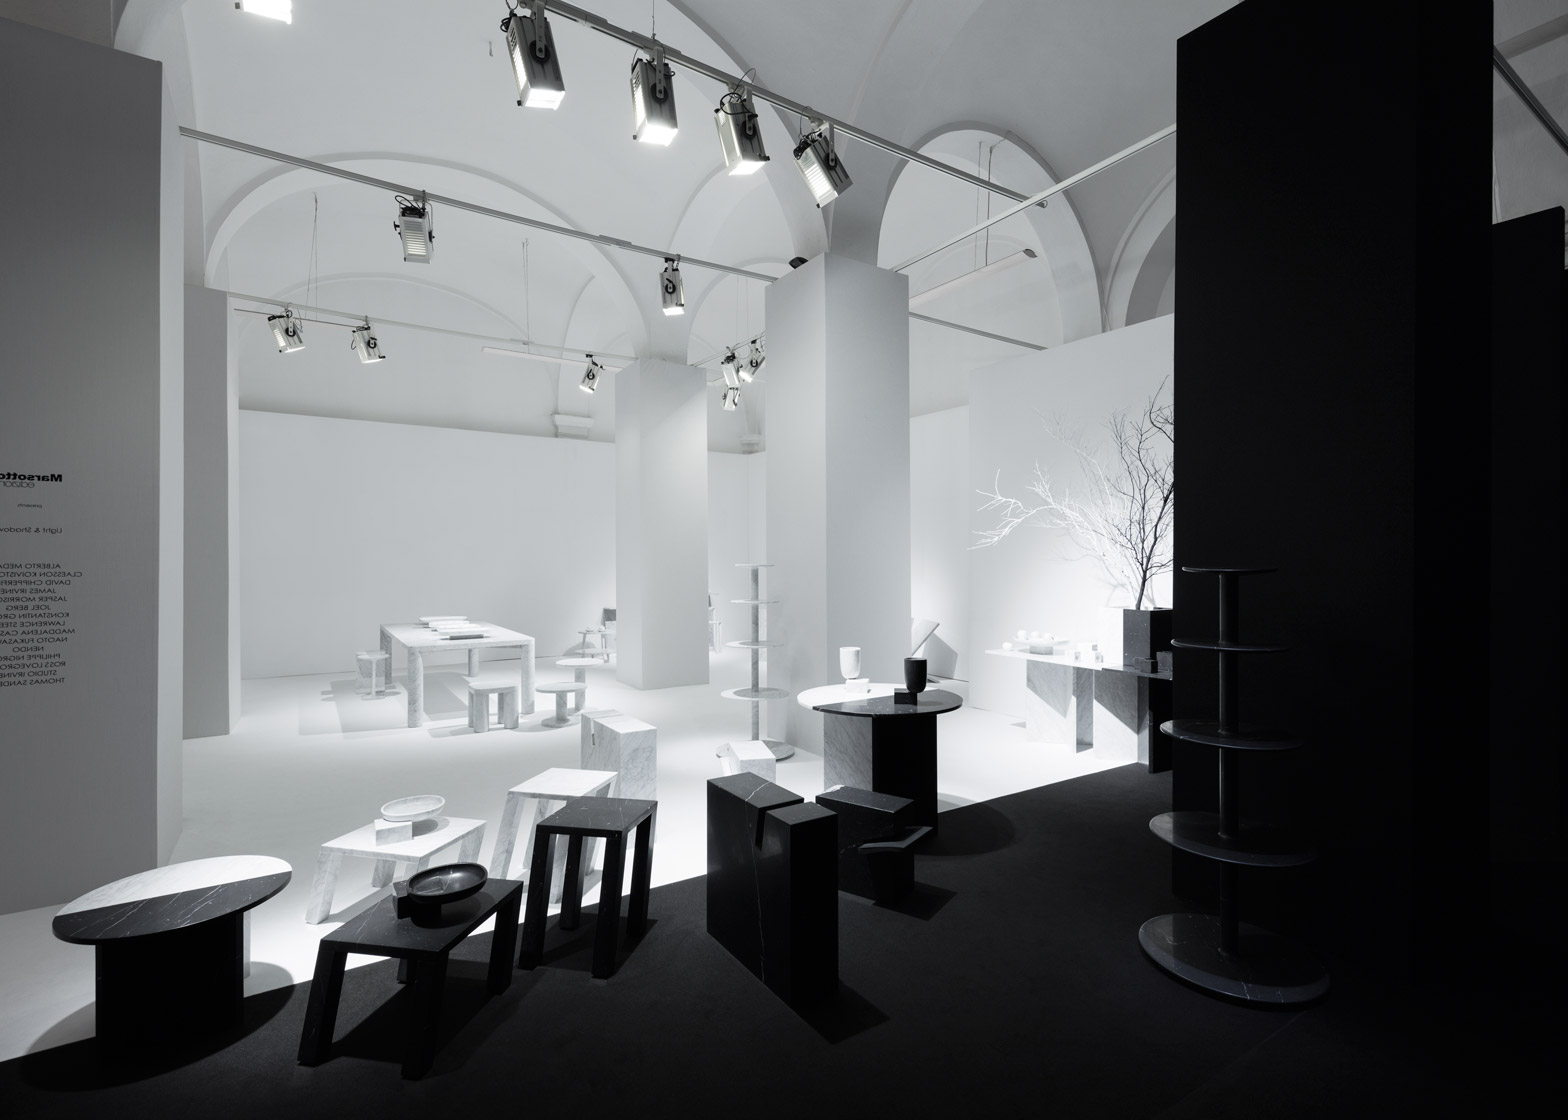 Light and shadow by Nendo for Marsotto edizioni